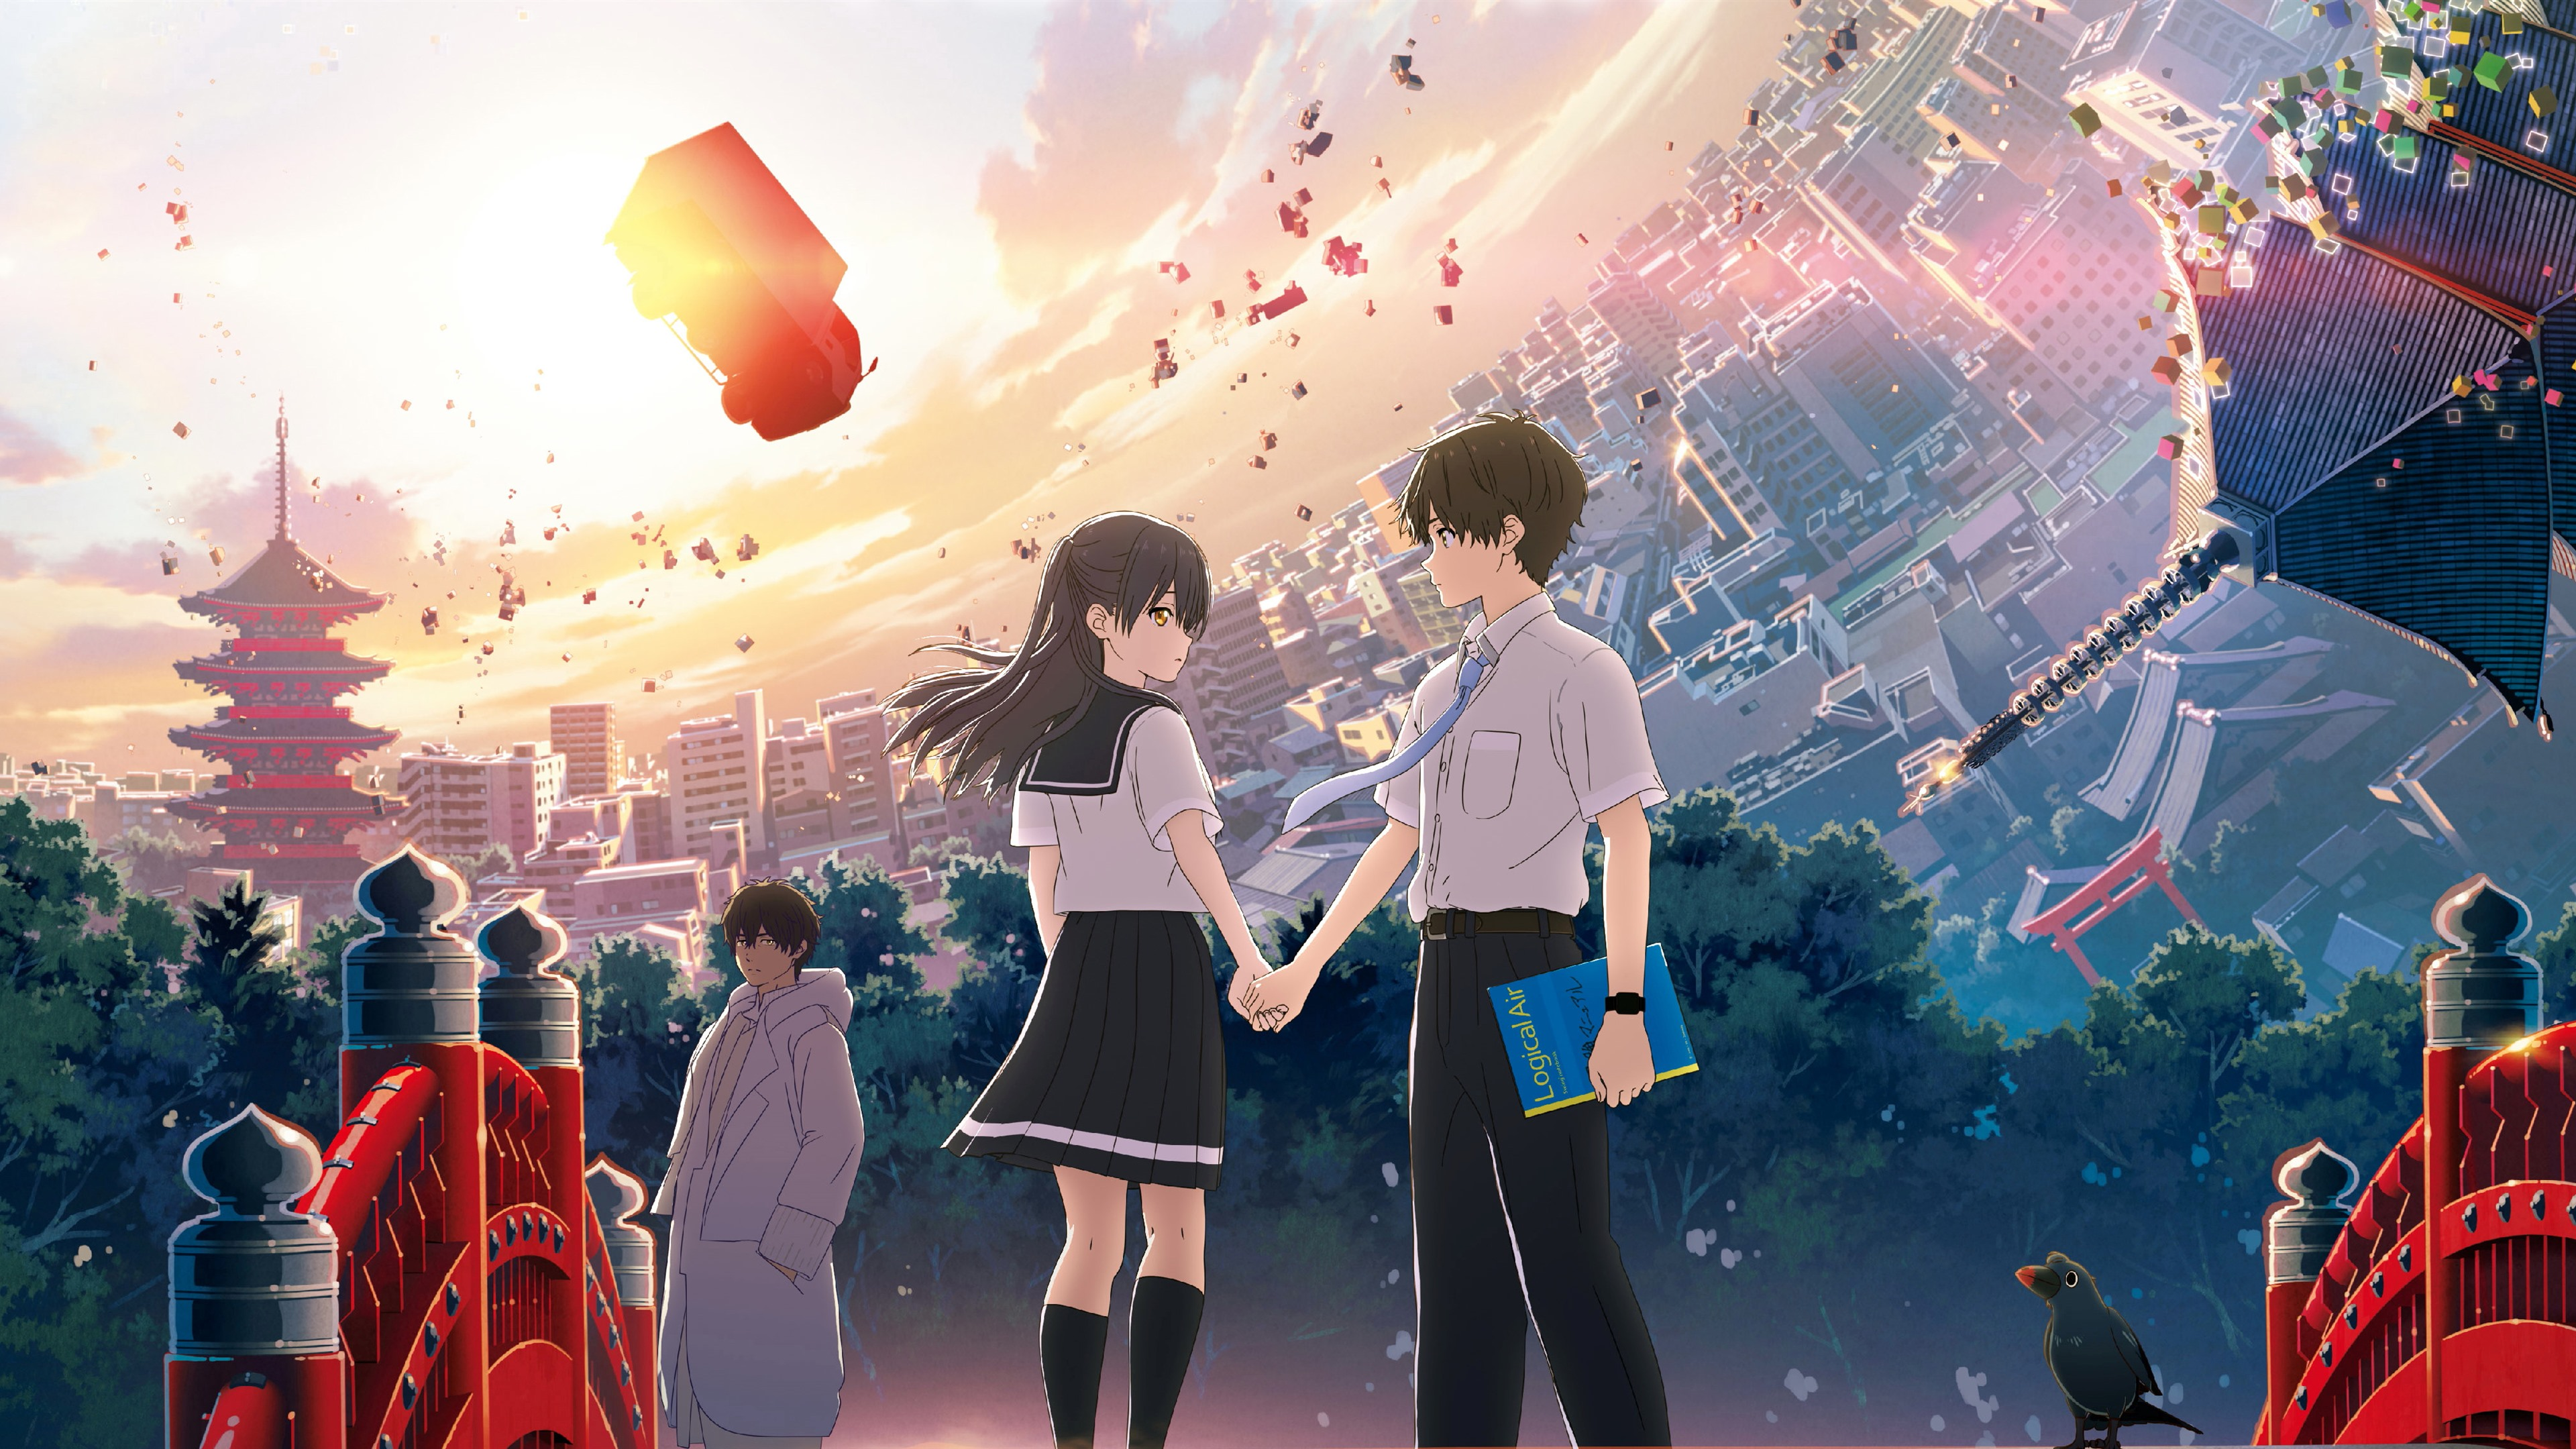 Wallpaper Hello World Anime Movie 2019 3840x2160 Uhd 4k Picture Image